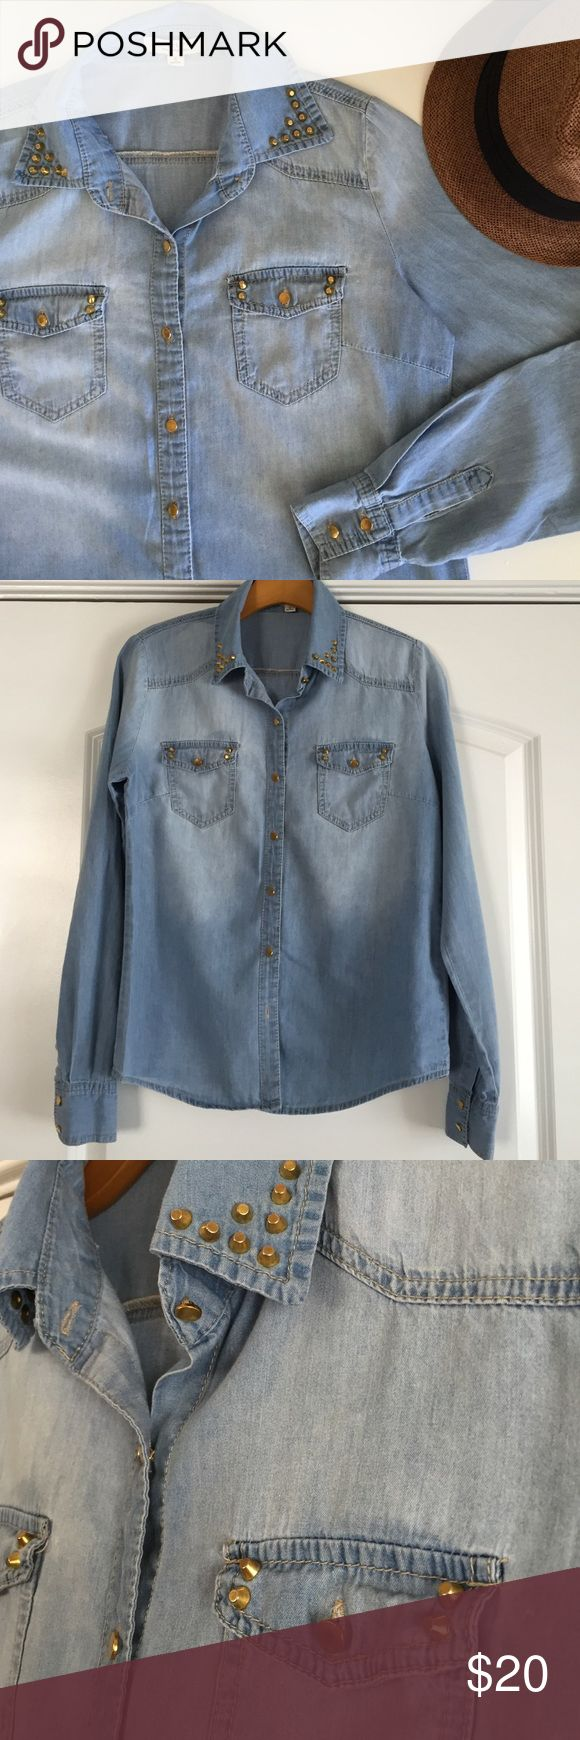 Denim Long Sleeve Top Gold stud detail on collar and pockets. Gold buttons. Light denim wash with tailored fit. Made of 100% cotton. Iris  Tops Button Down Shirts